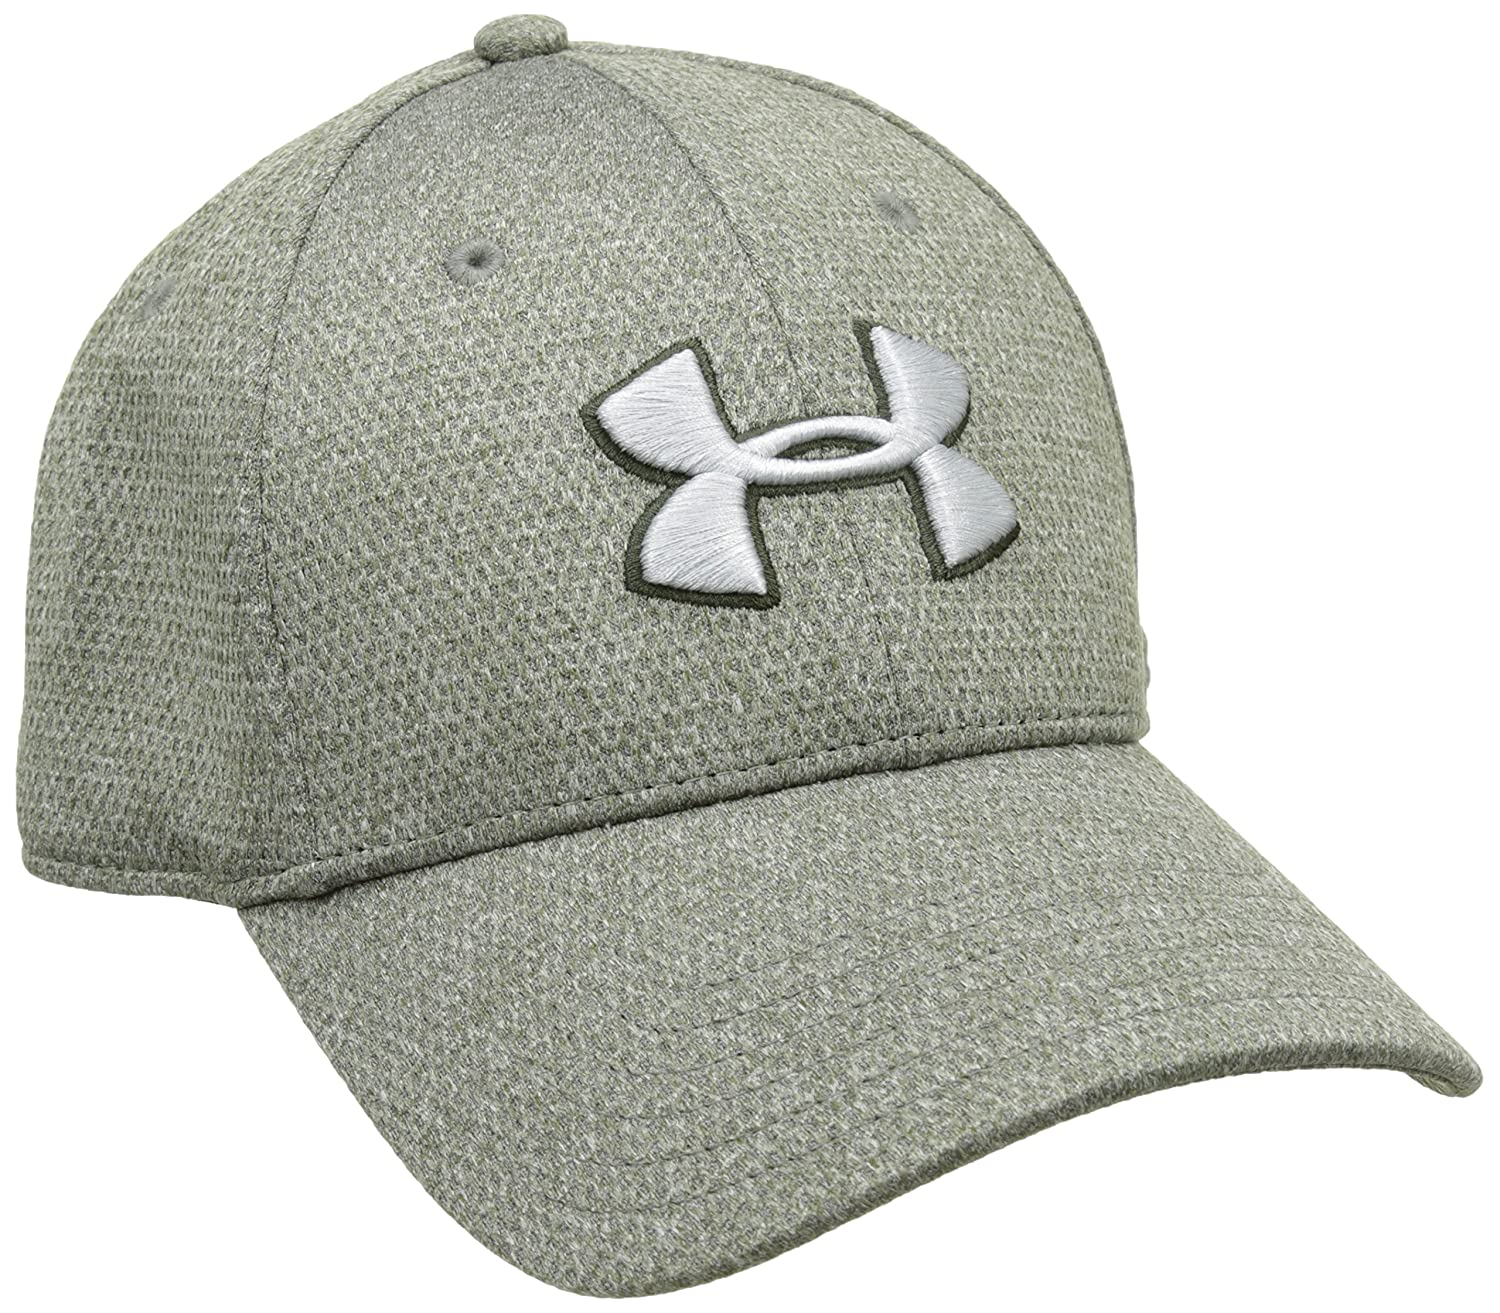 f59eced1299 Amazon.com  Under Armour Men s Heathered Blitzing Cap  UNDER ARMOUR  Sports    Outdoors